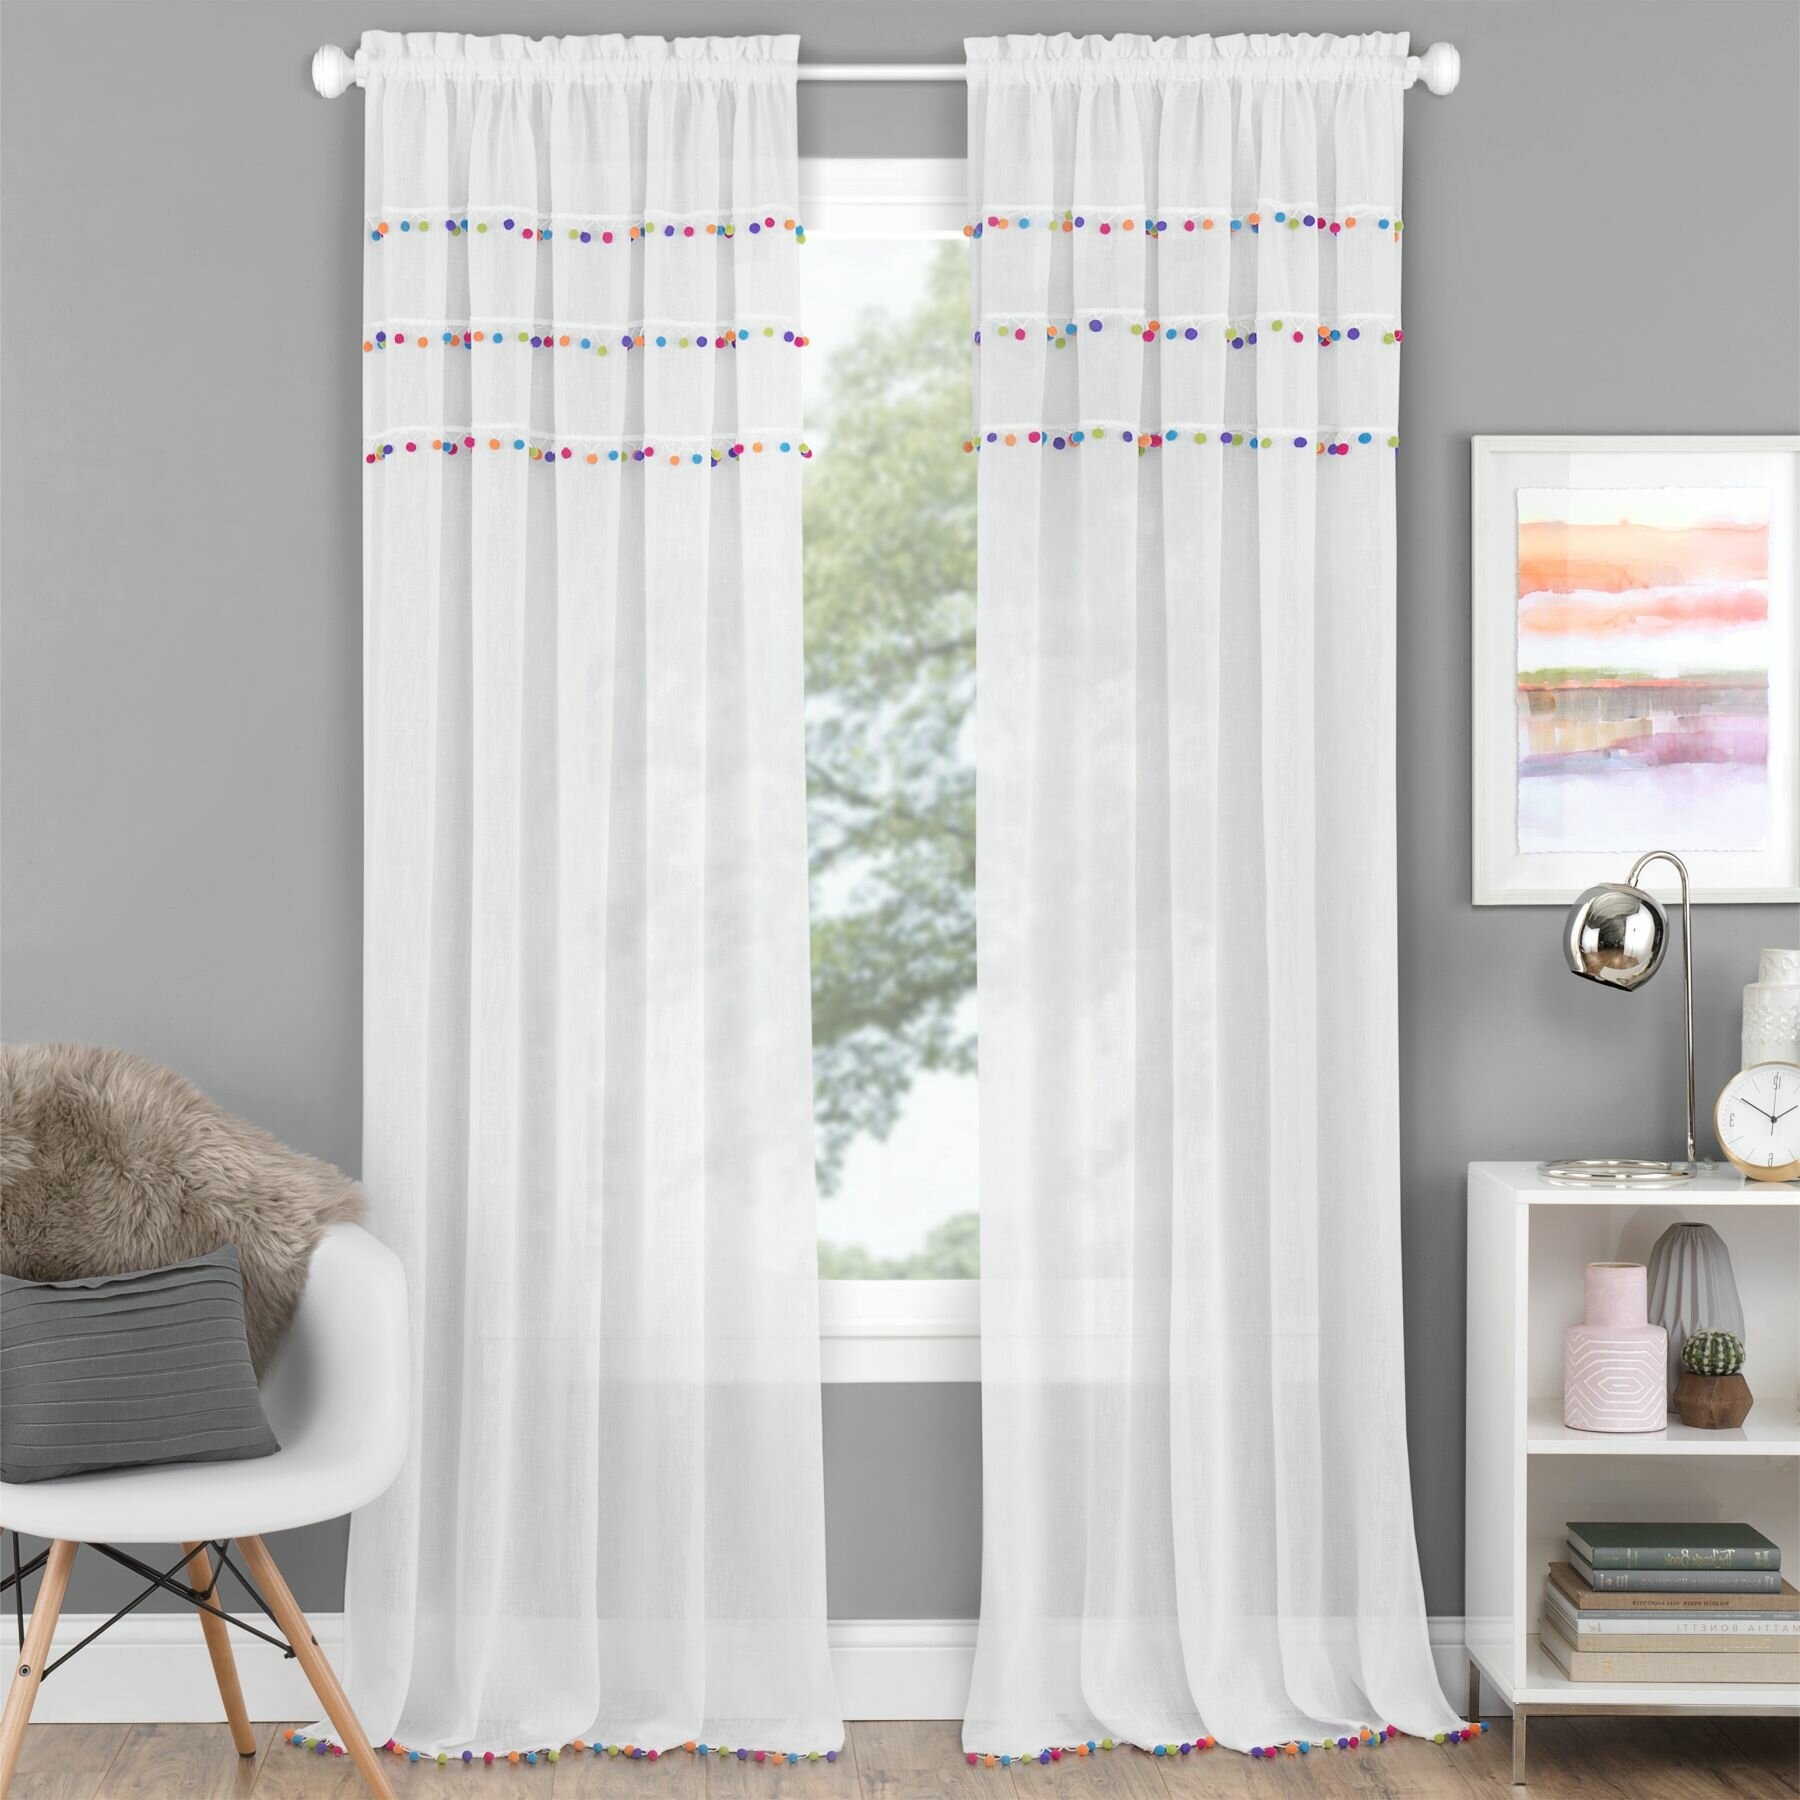 Dakota Fields Lemley Pom Pom Semi Sheer Rod Pocket Curtain Wayfair